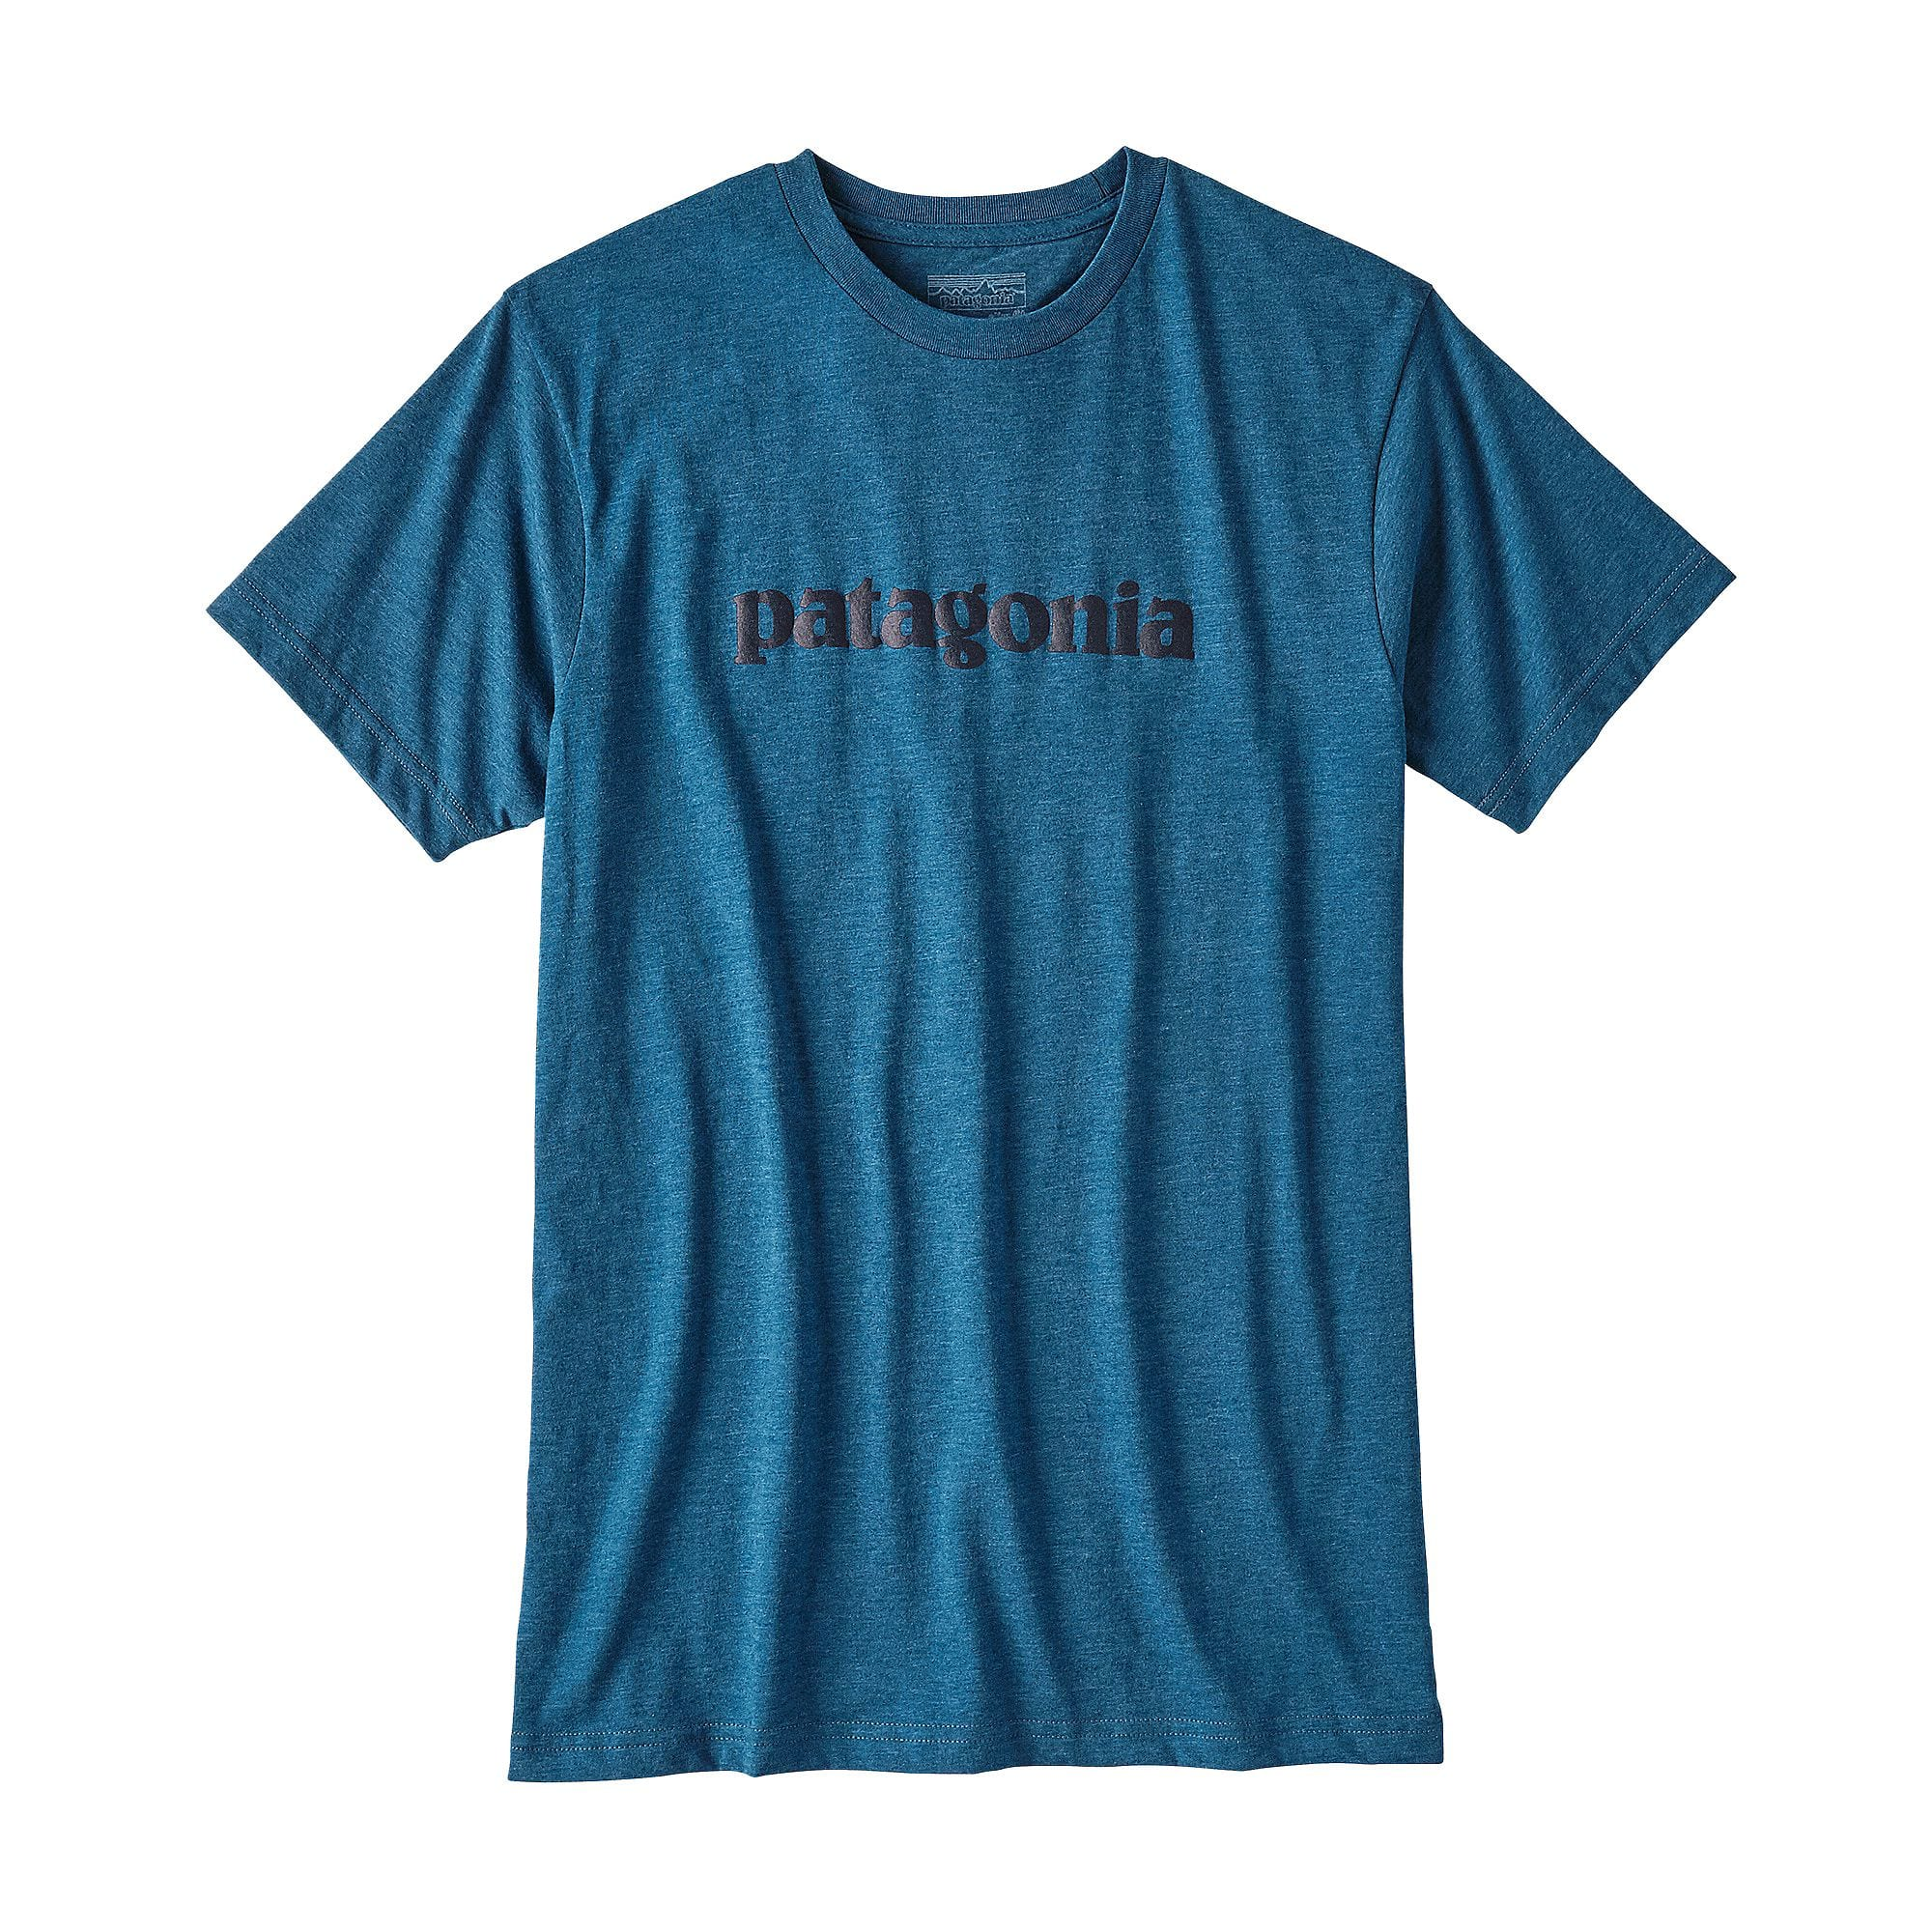 patagonia mens text logo cotton poly t shirt the sporting lodge. Black Bedroom Furniture Sets. Home Design Ideas